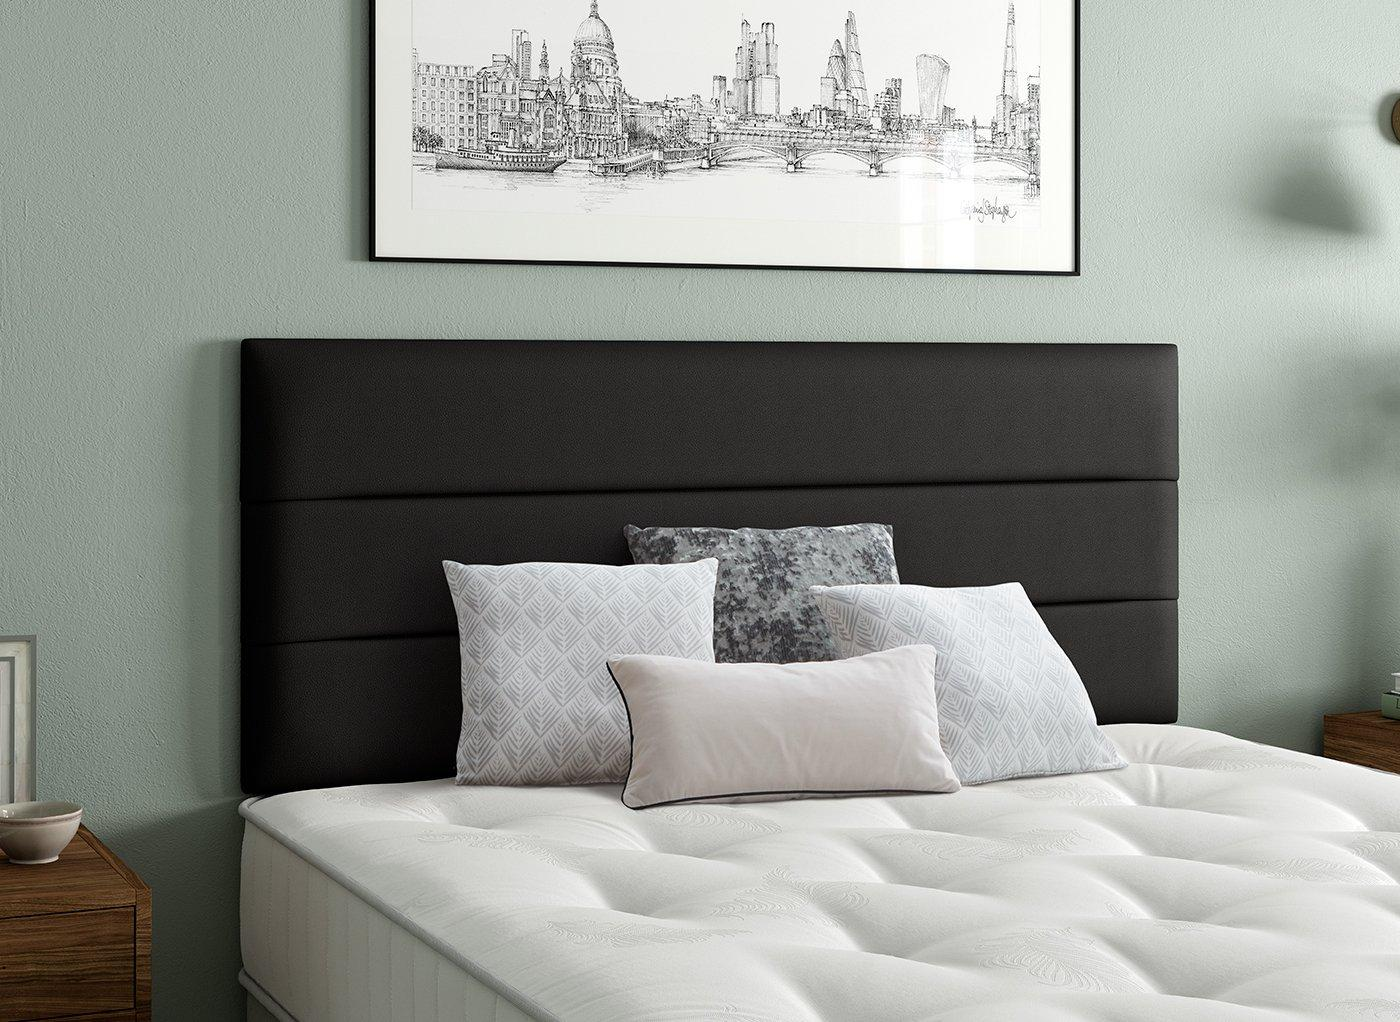 Stamford Headboard 2'6 Small single BLACK